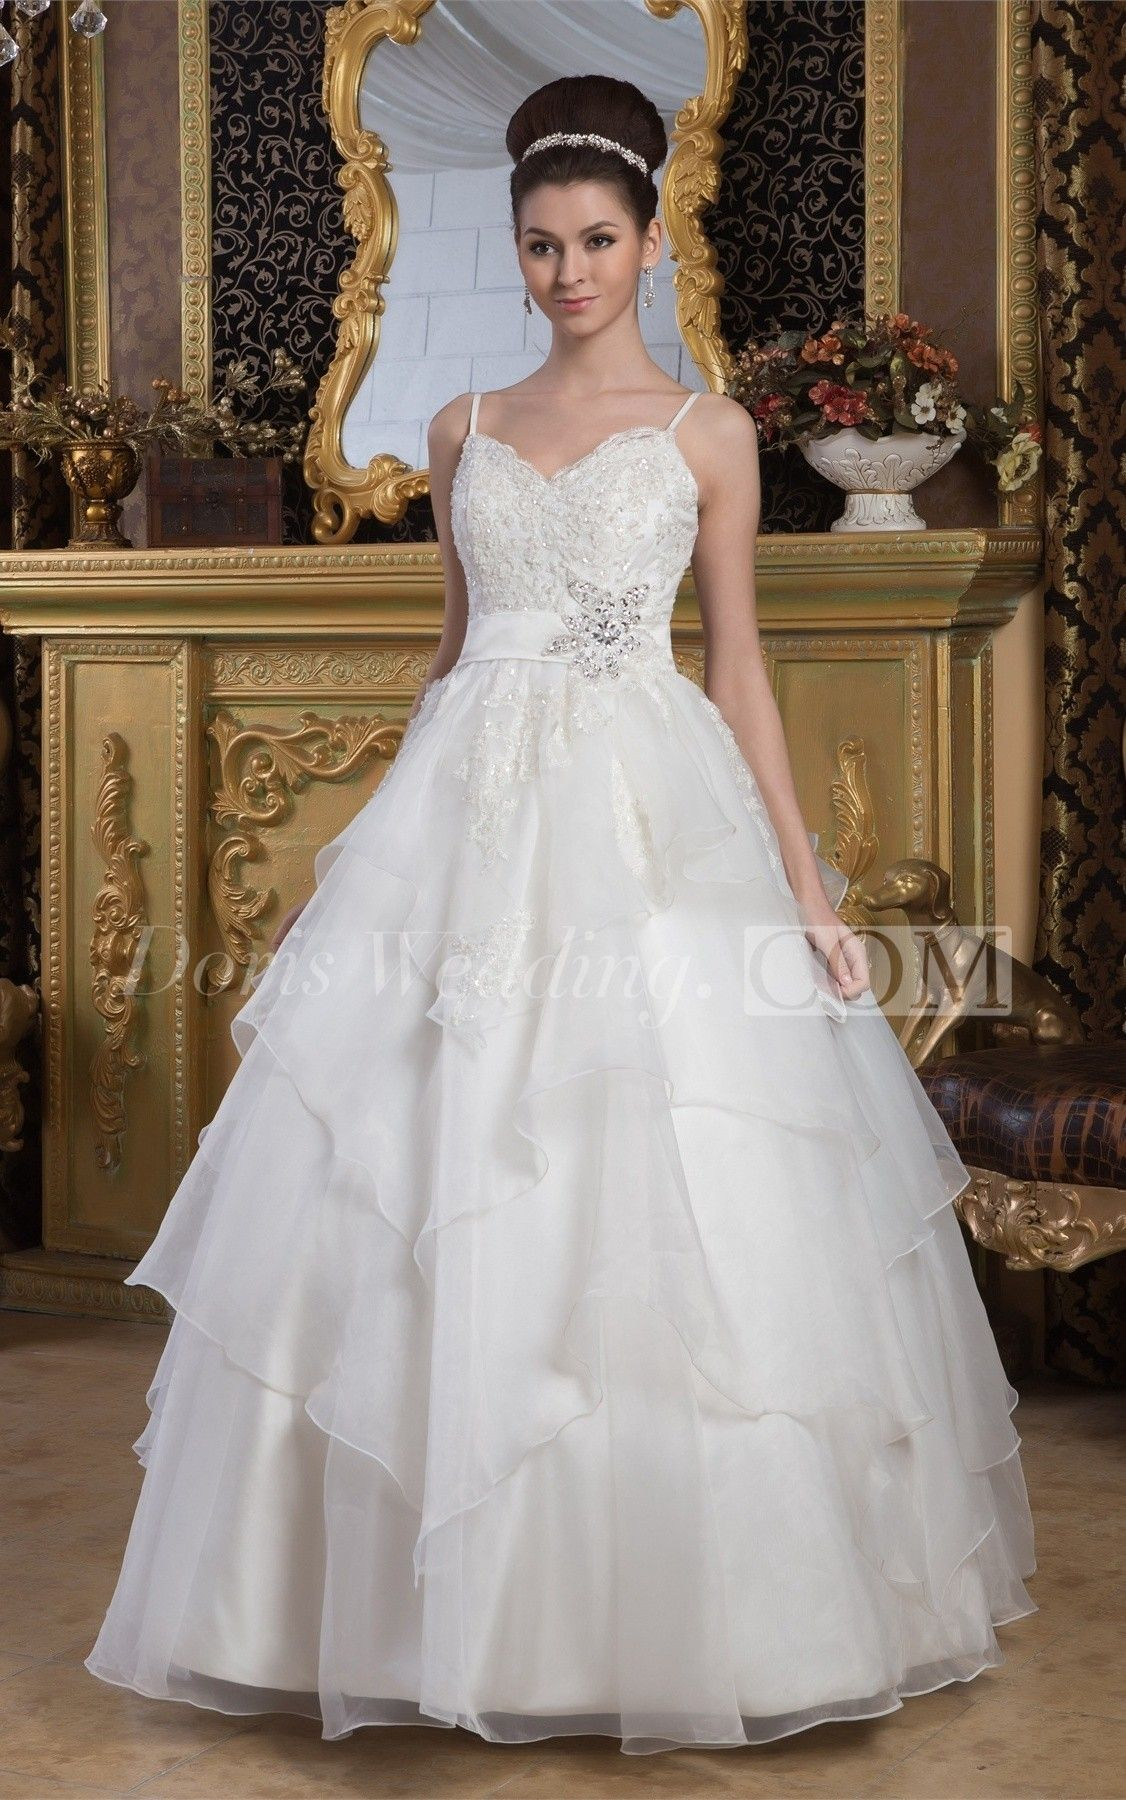 Lace Tulle ALine Spaghetti Straps and BallGown With Beading